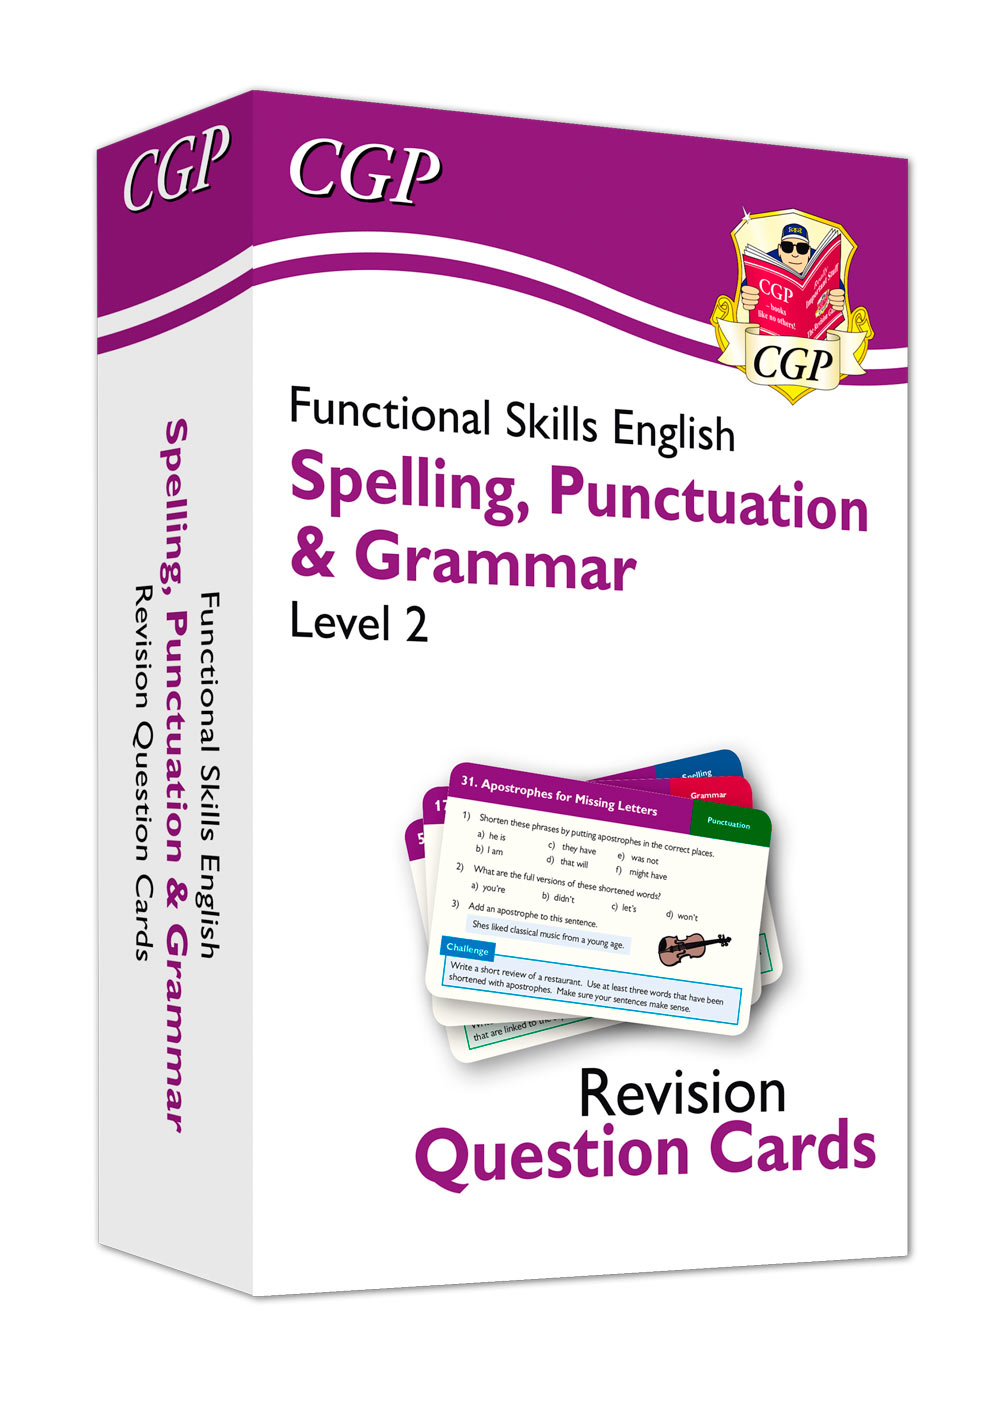 E2GFA1 - New Functional Skills English Revision Question Cards: Spelling, Punctuation & Grammar - Le